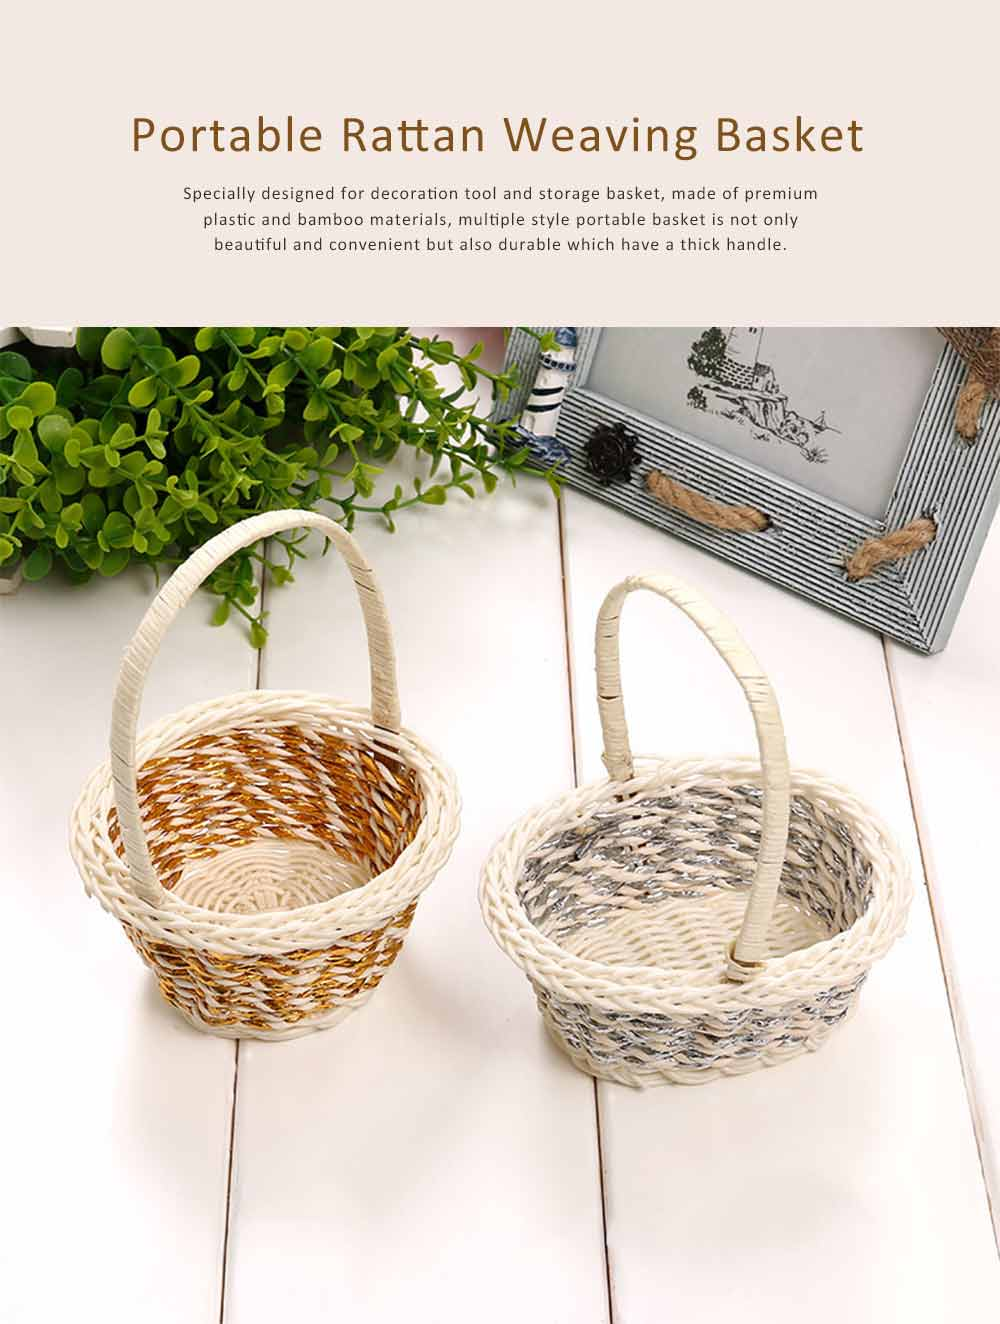 Portable Rattan Weaving Basket for Storage, Wedding as Decoration Tool, Multiple Styles DIY Handmade Flower Arrangement Basket 0